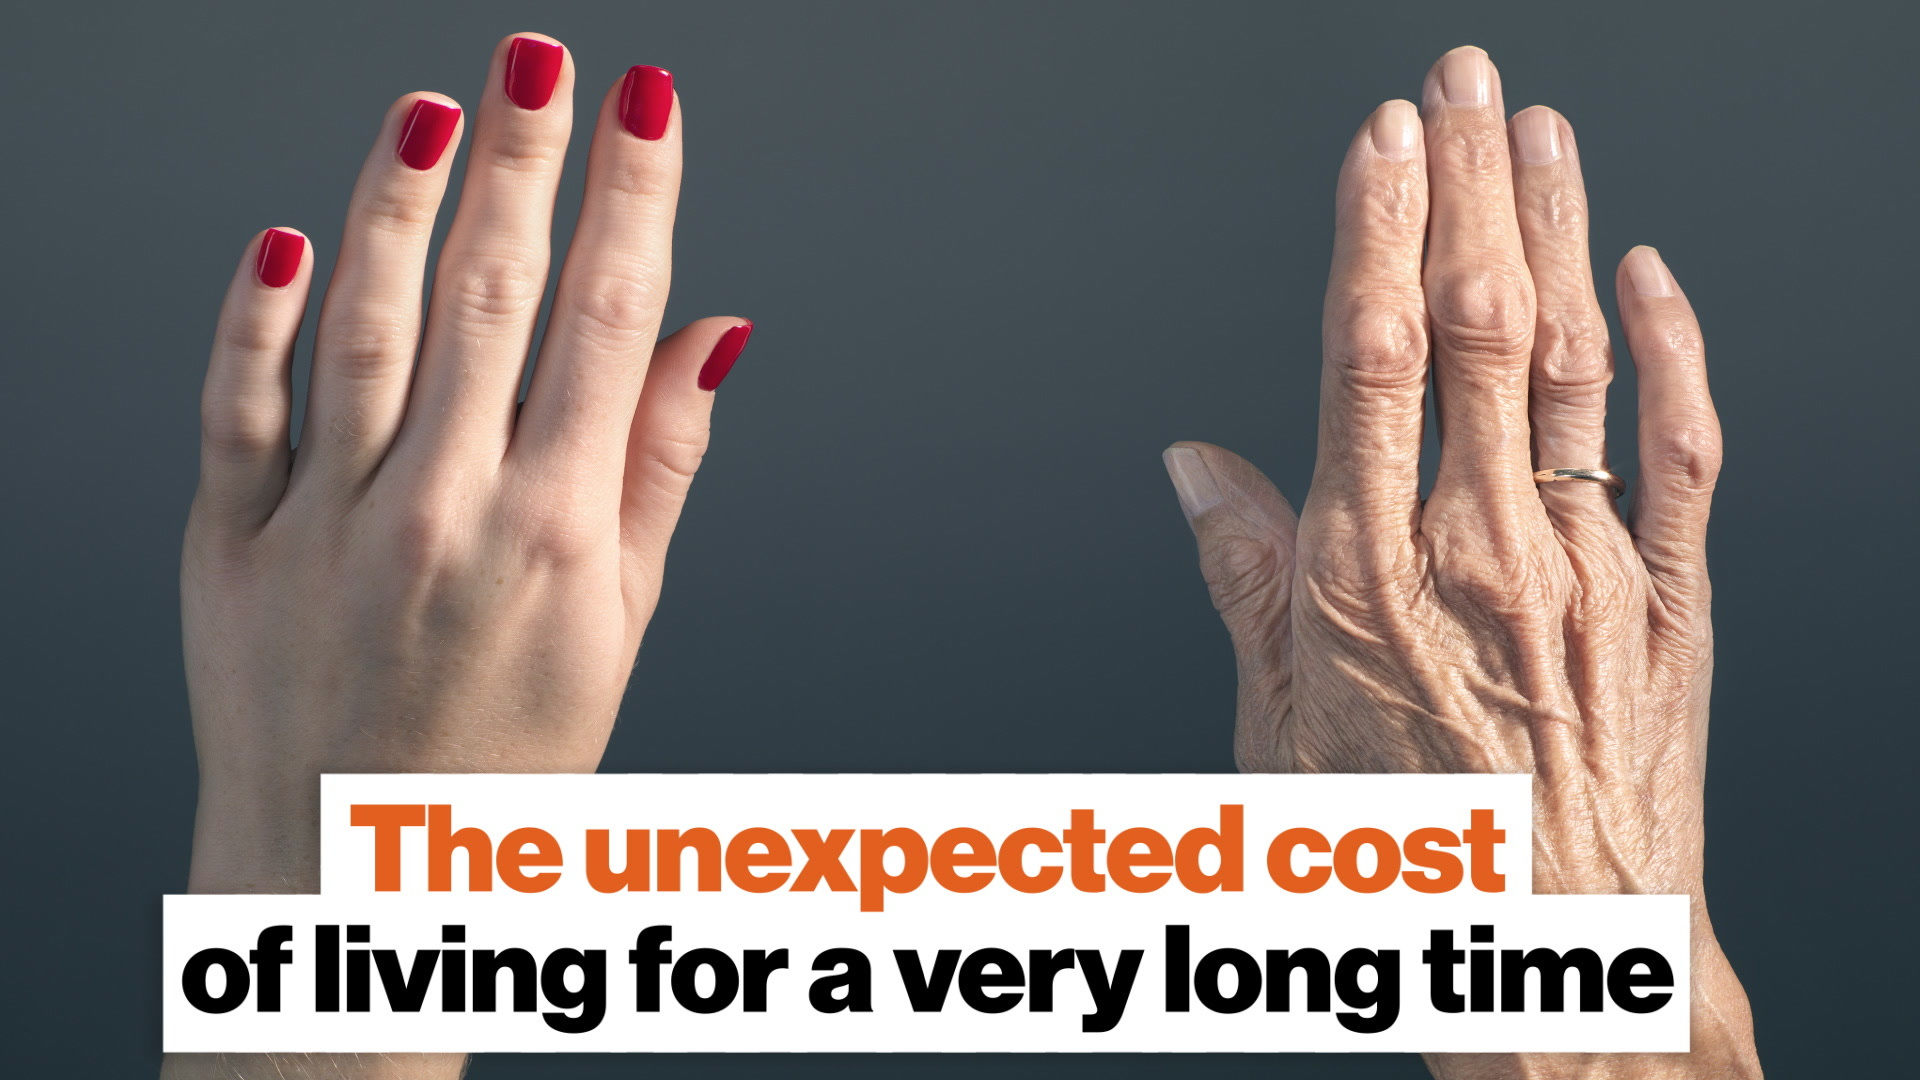 The unexpected cost of living for a very long time